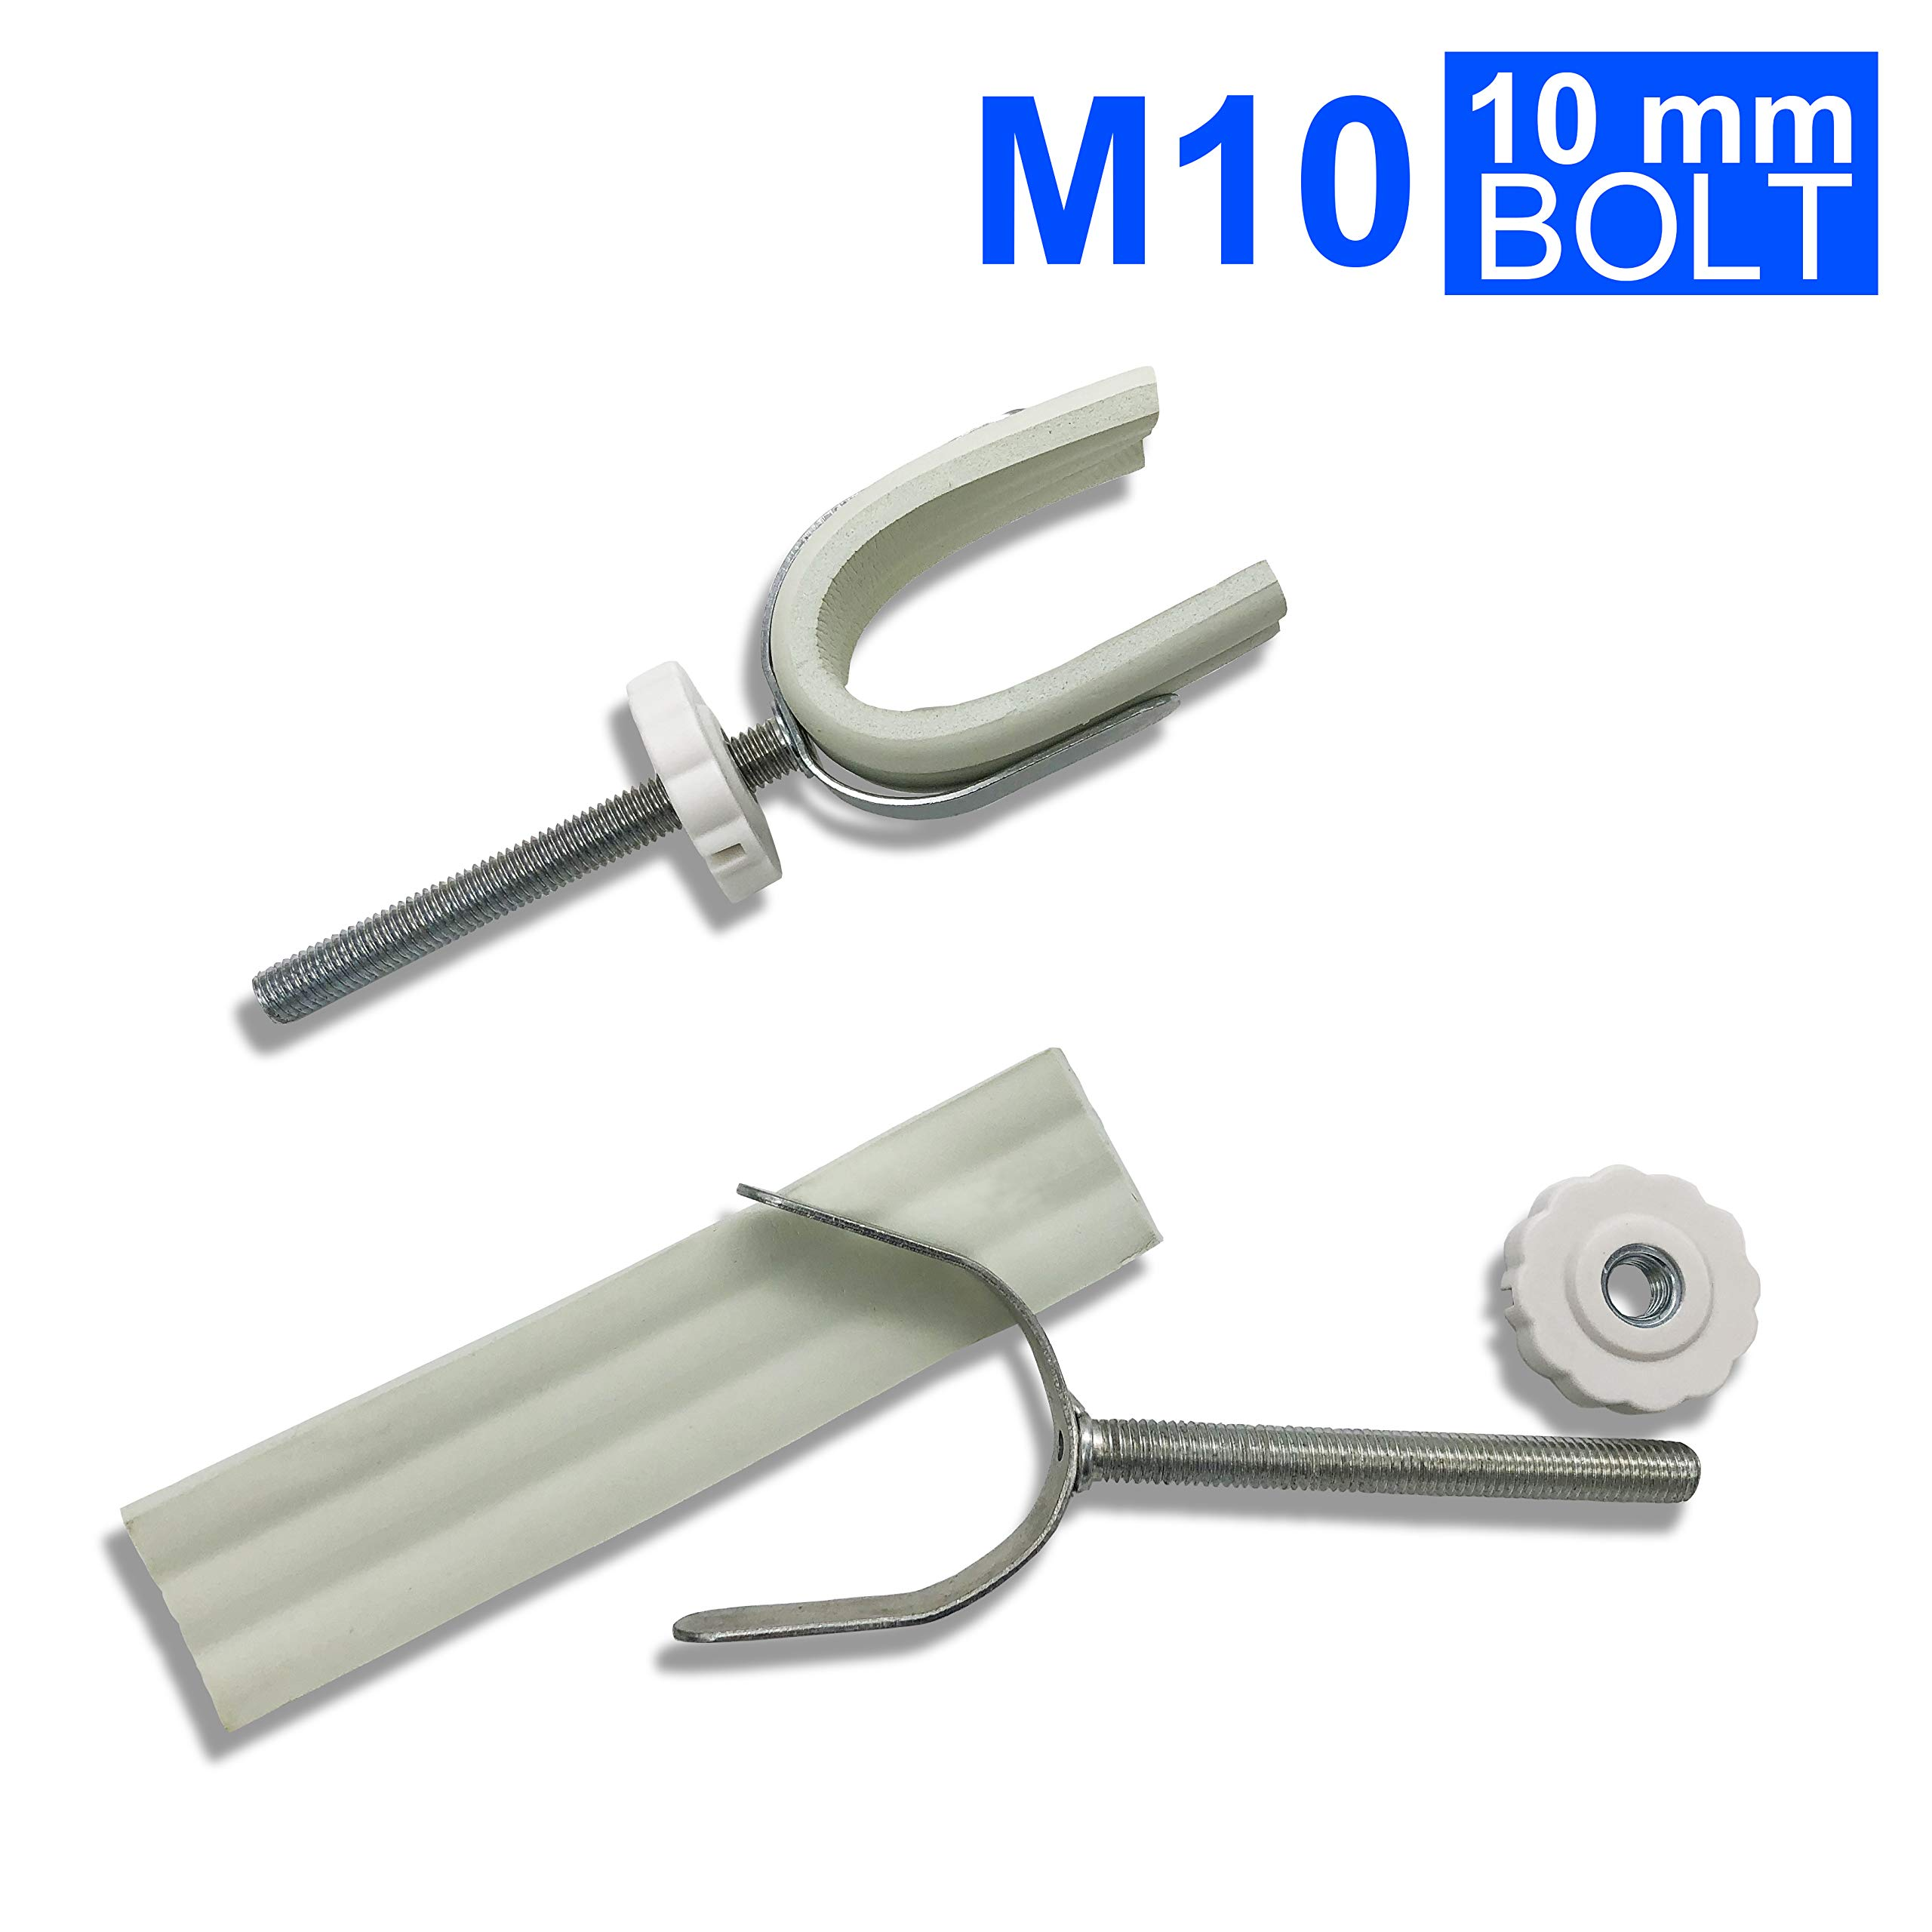 Sungrace Y Spindle Banister Gate Adaptors for Pressure Mounted Baby Gates (2 Pack, 10mm)